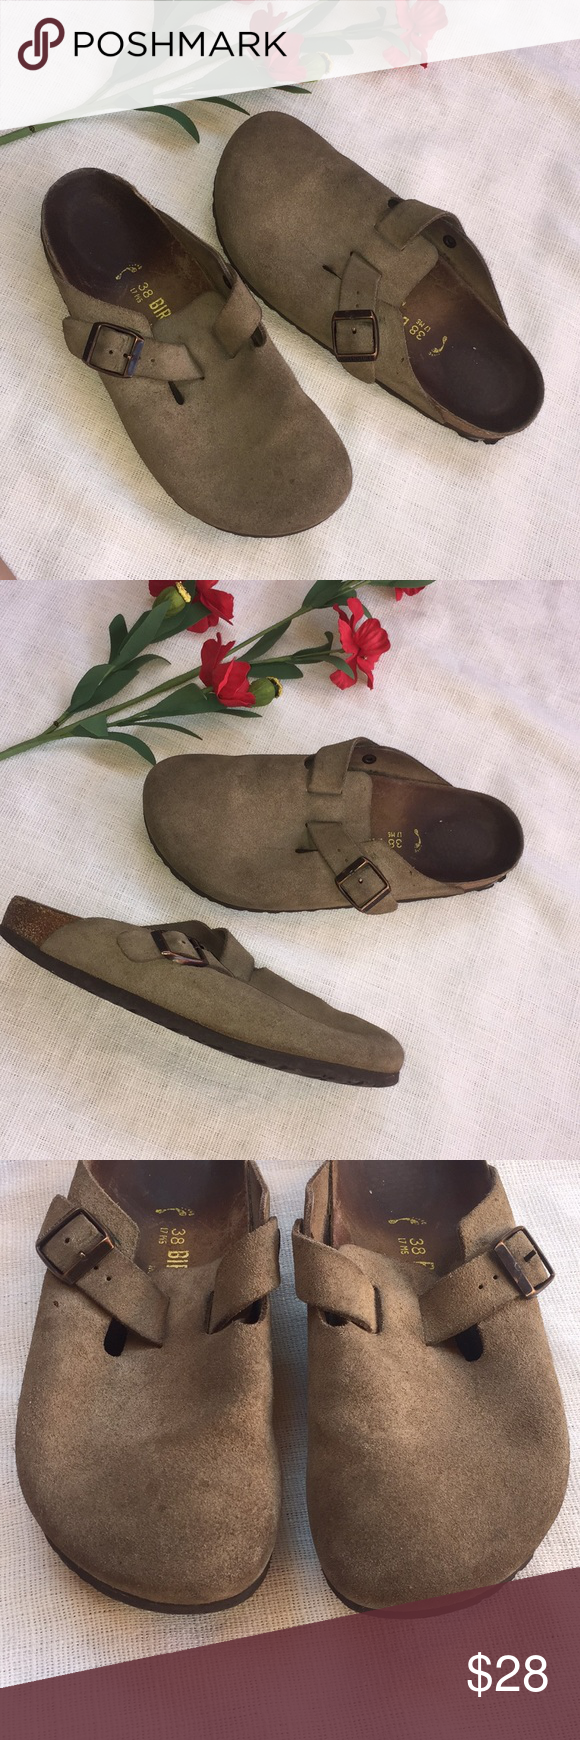 Birkenstock slip on Clogs Sz 38 or Birkenstock slip on